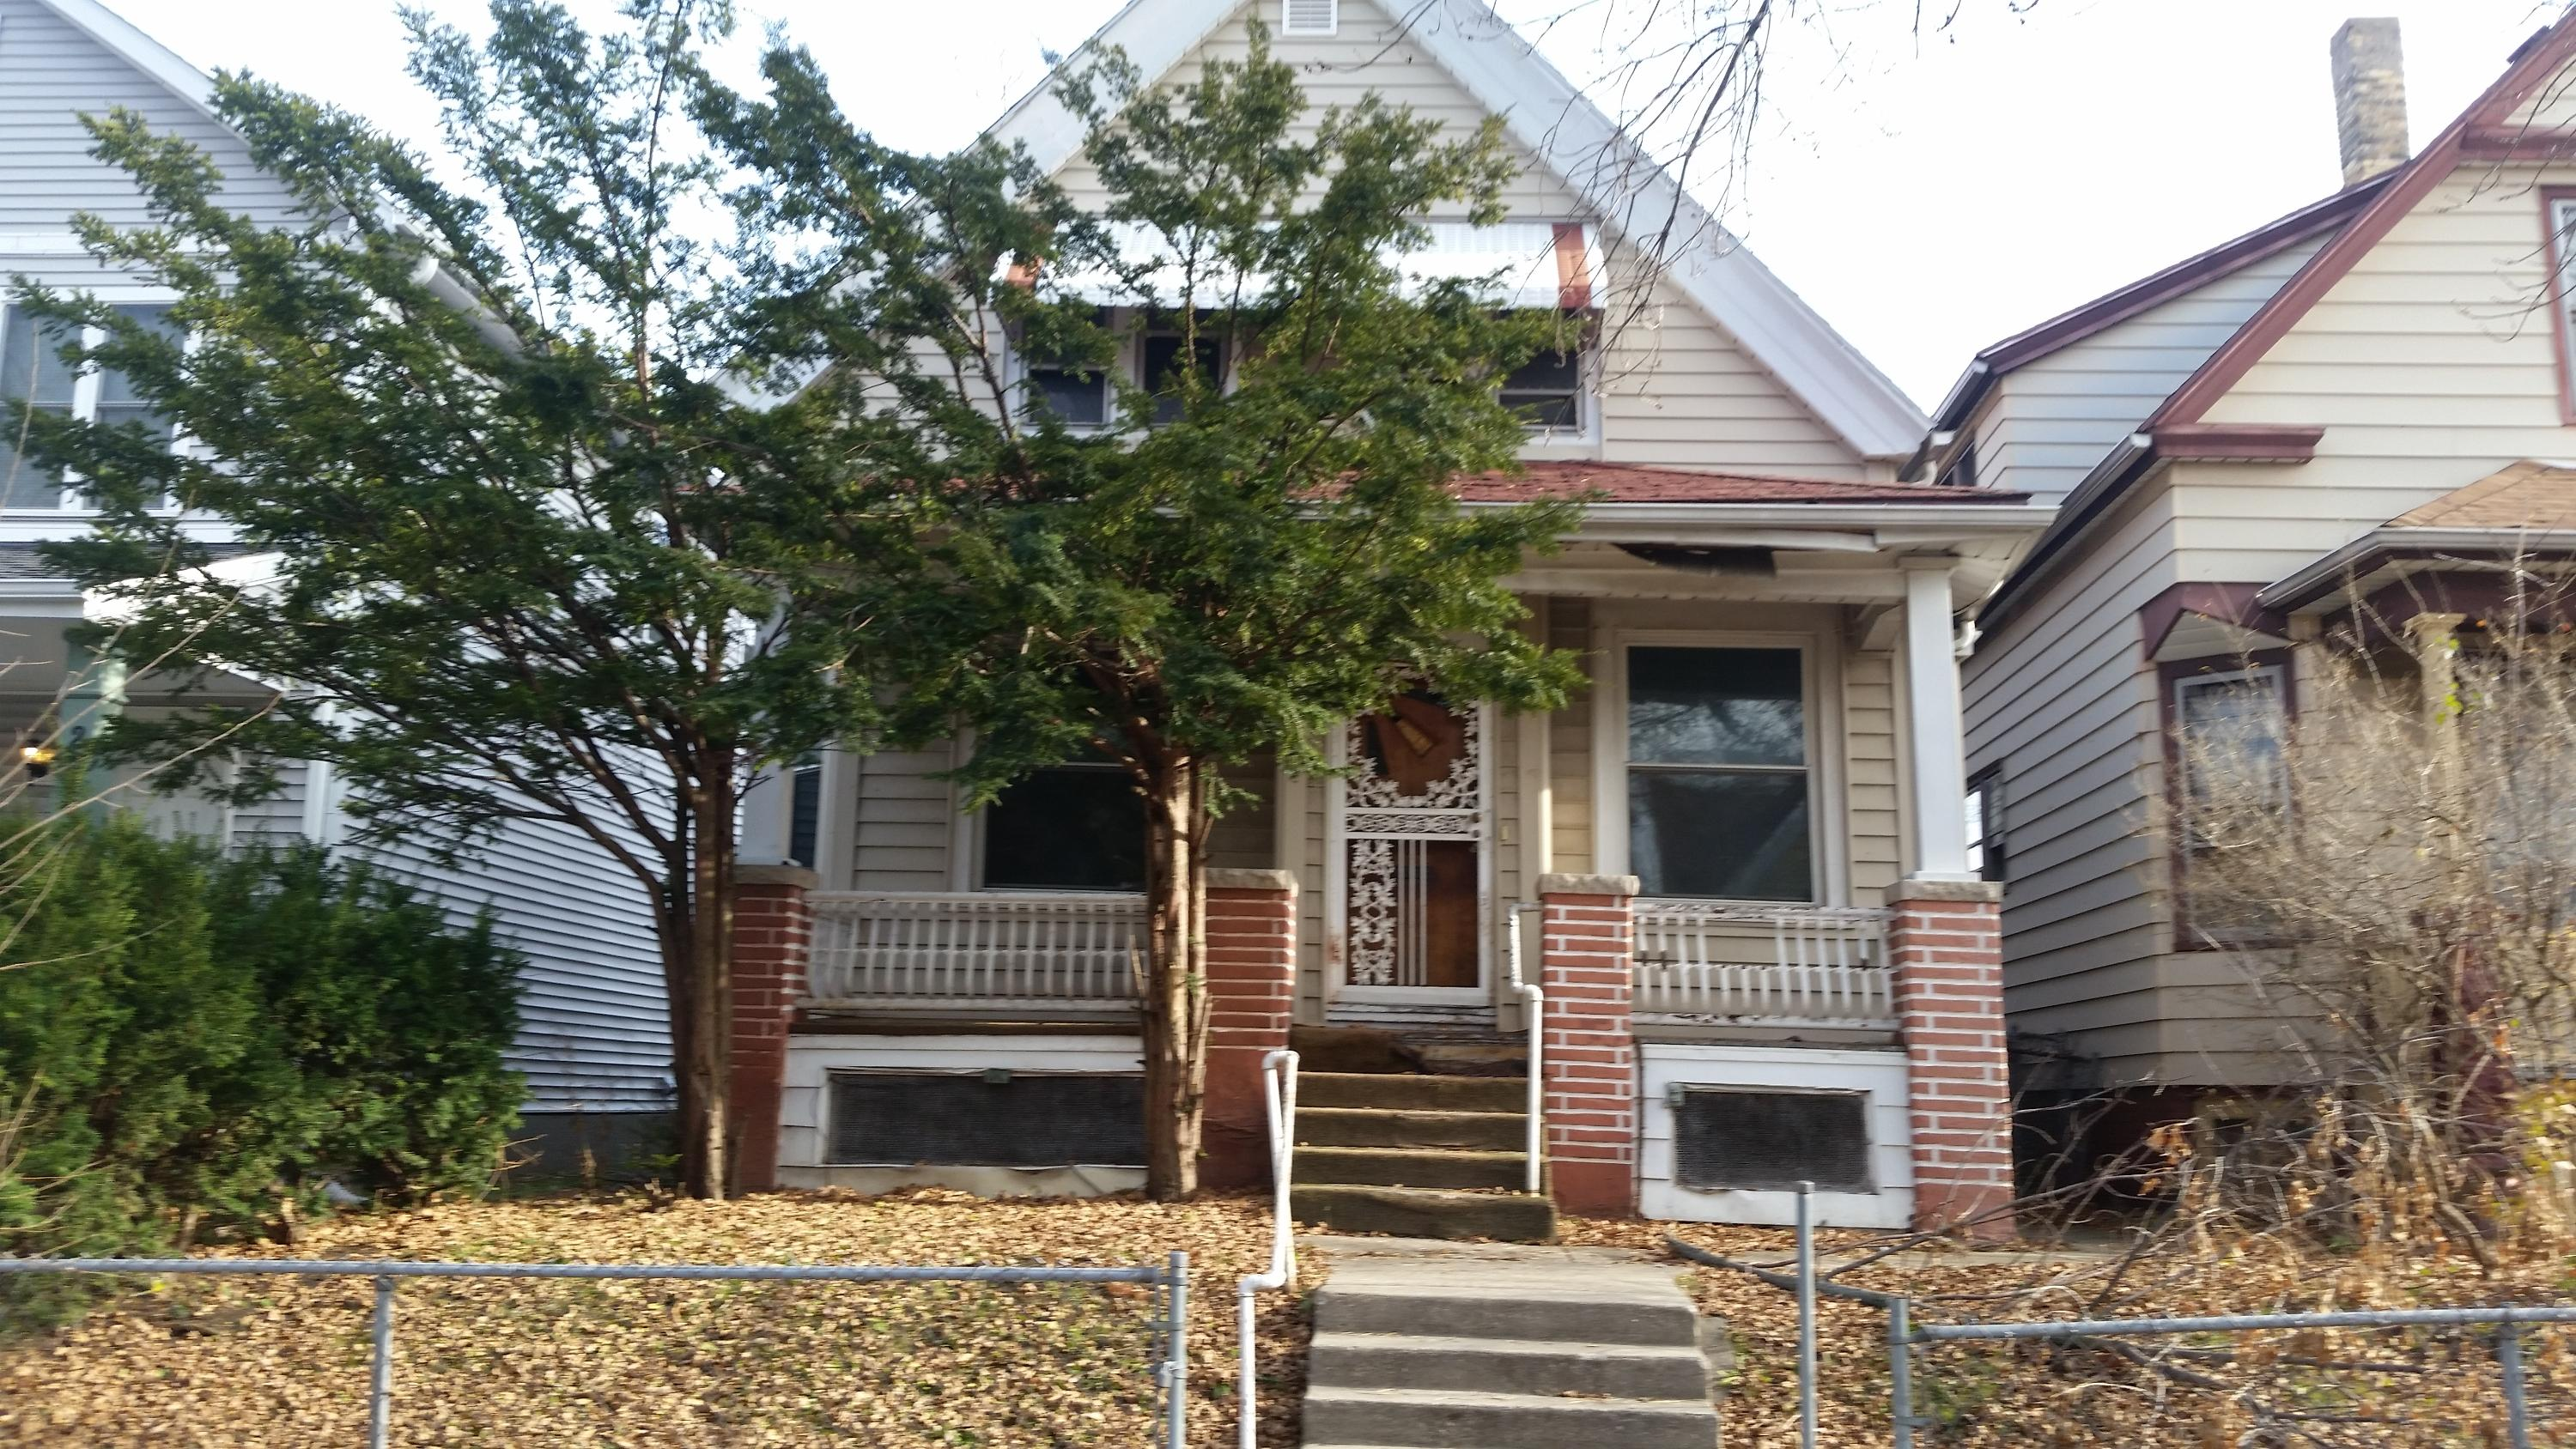 2958 18th St, Milwaukee, Wisconsin 53206, 2 Bedrooms Bedrooms, 5 Rooms Rooms,1 BathroomBathrooms,Two-Family,For Sale,18th St,1,1453515